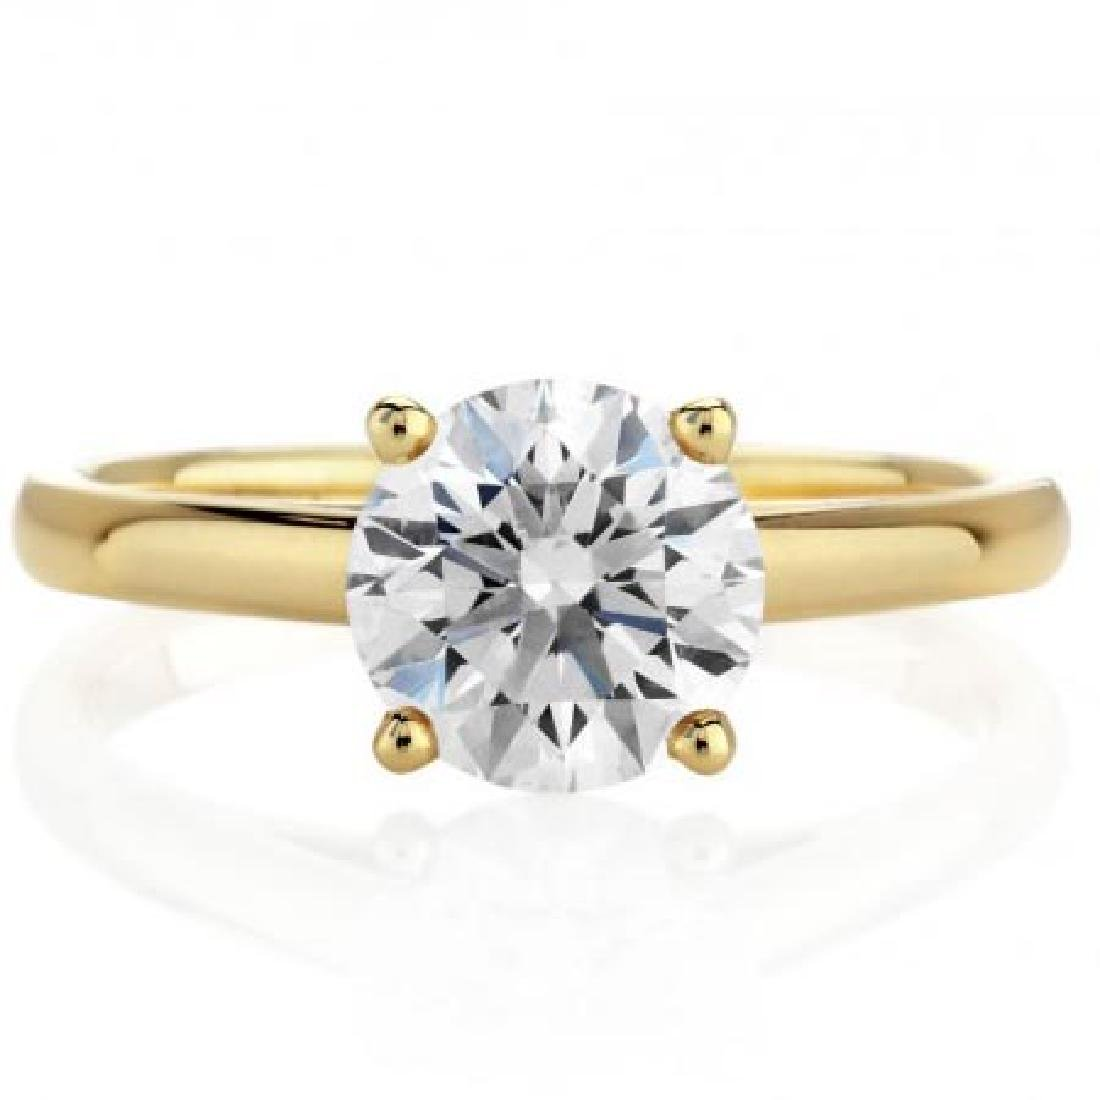 CERTIFIED 1 CTW ROUND H/VS2 SOLITAIRE RING IN 14K YELLO